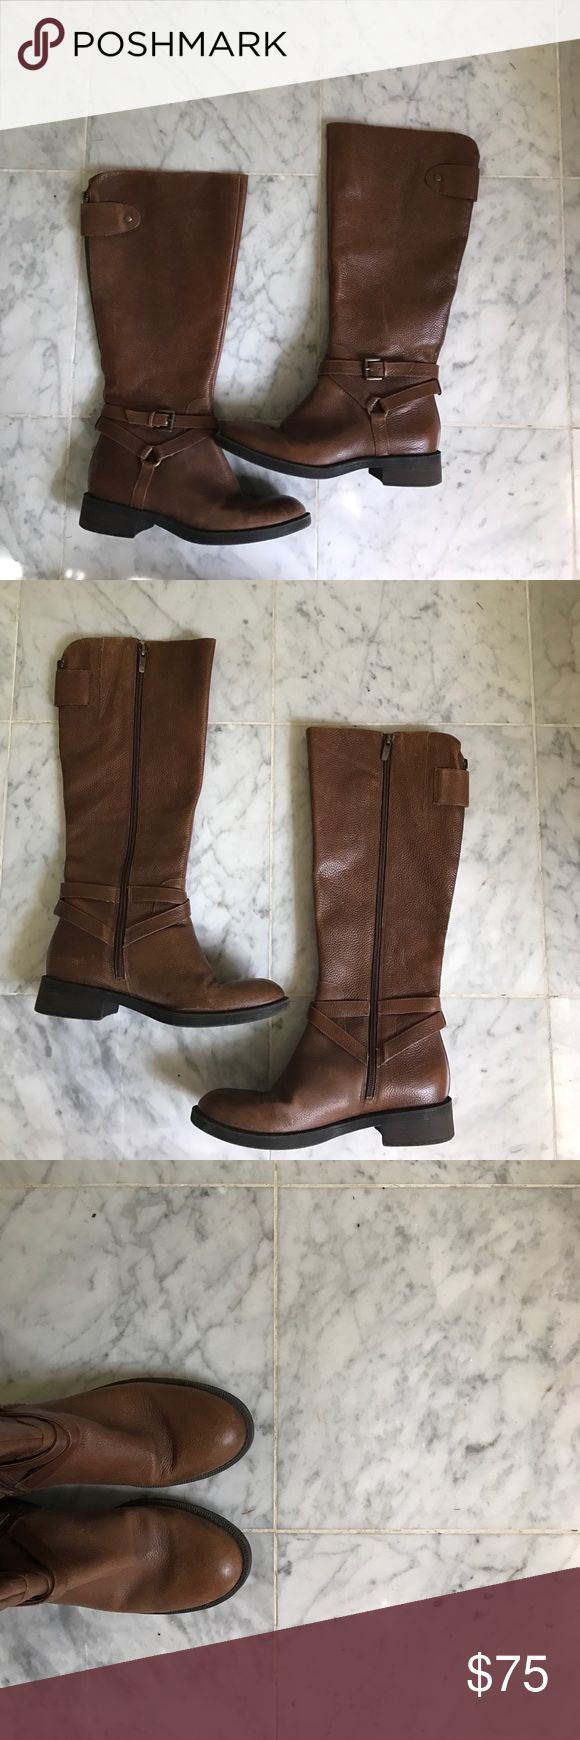 Enzo Angiolini Tall Brown Boots This twice worn pair of caramel/light brown tall Enzo Angiolini boots have two fashionable buckles at base of boot and one flap at top of boot, covering the zipper strip in back of boot. These boots have a convenient zipper lining the side of the calf allowing for a easy and comfortable fit. These shoes are great for both casual and nice events depending on what they are paired with, and work in Fall, Winter, and Spring! Enzo Angiolini Shoes